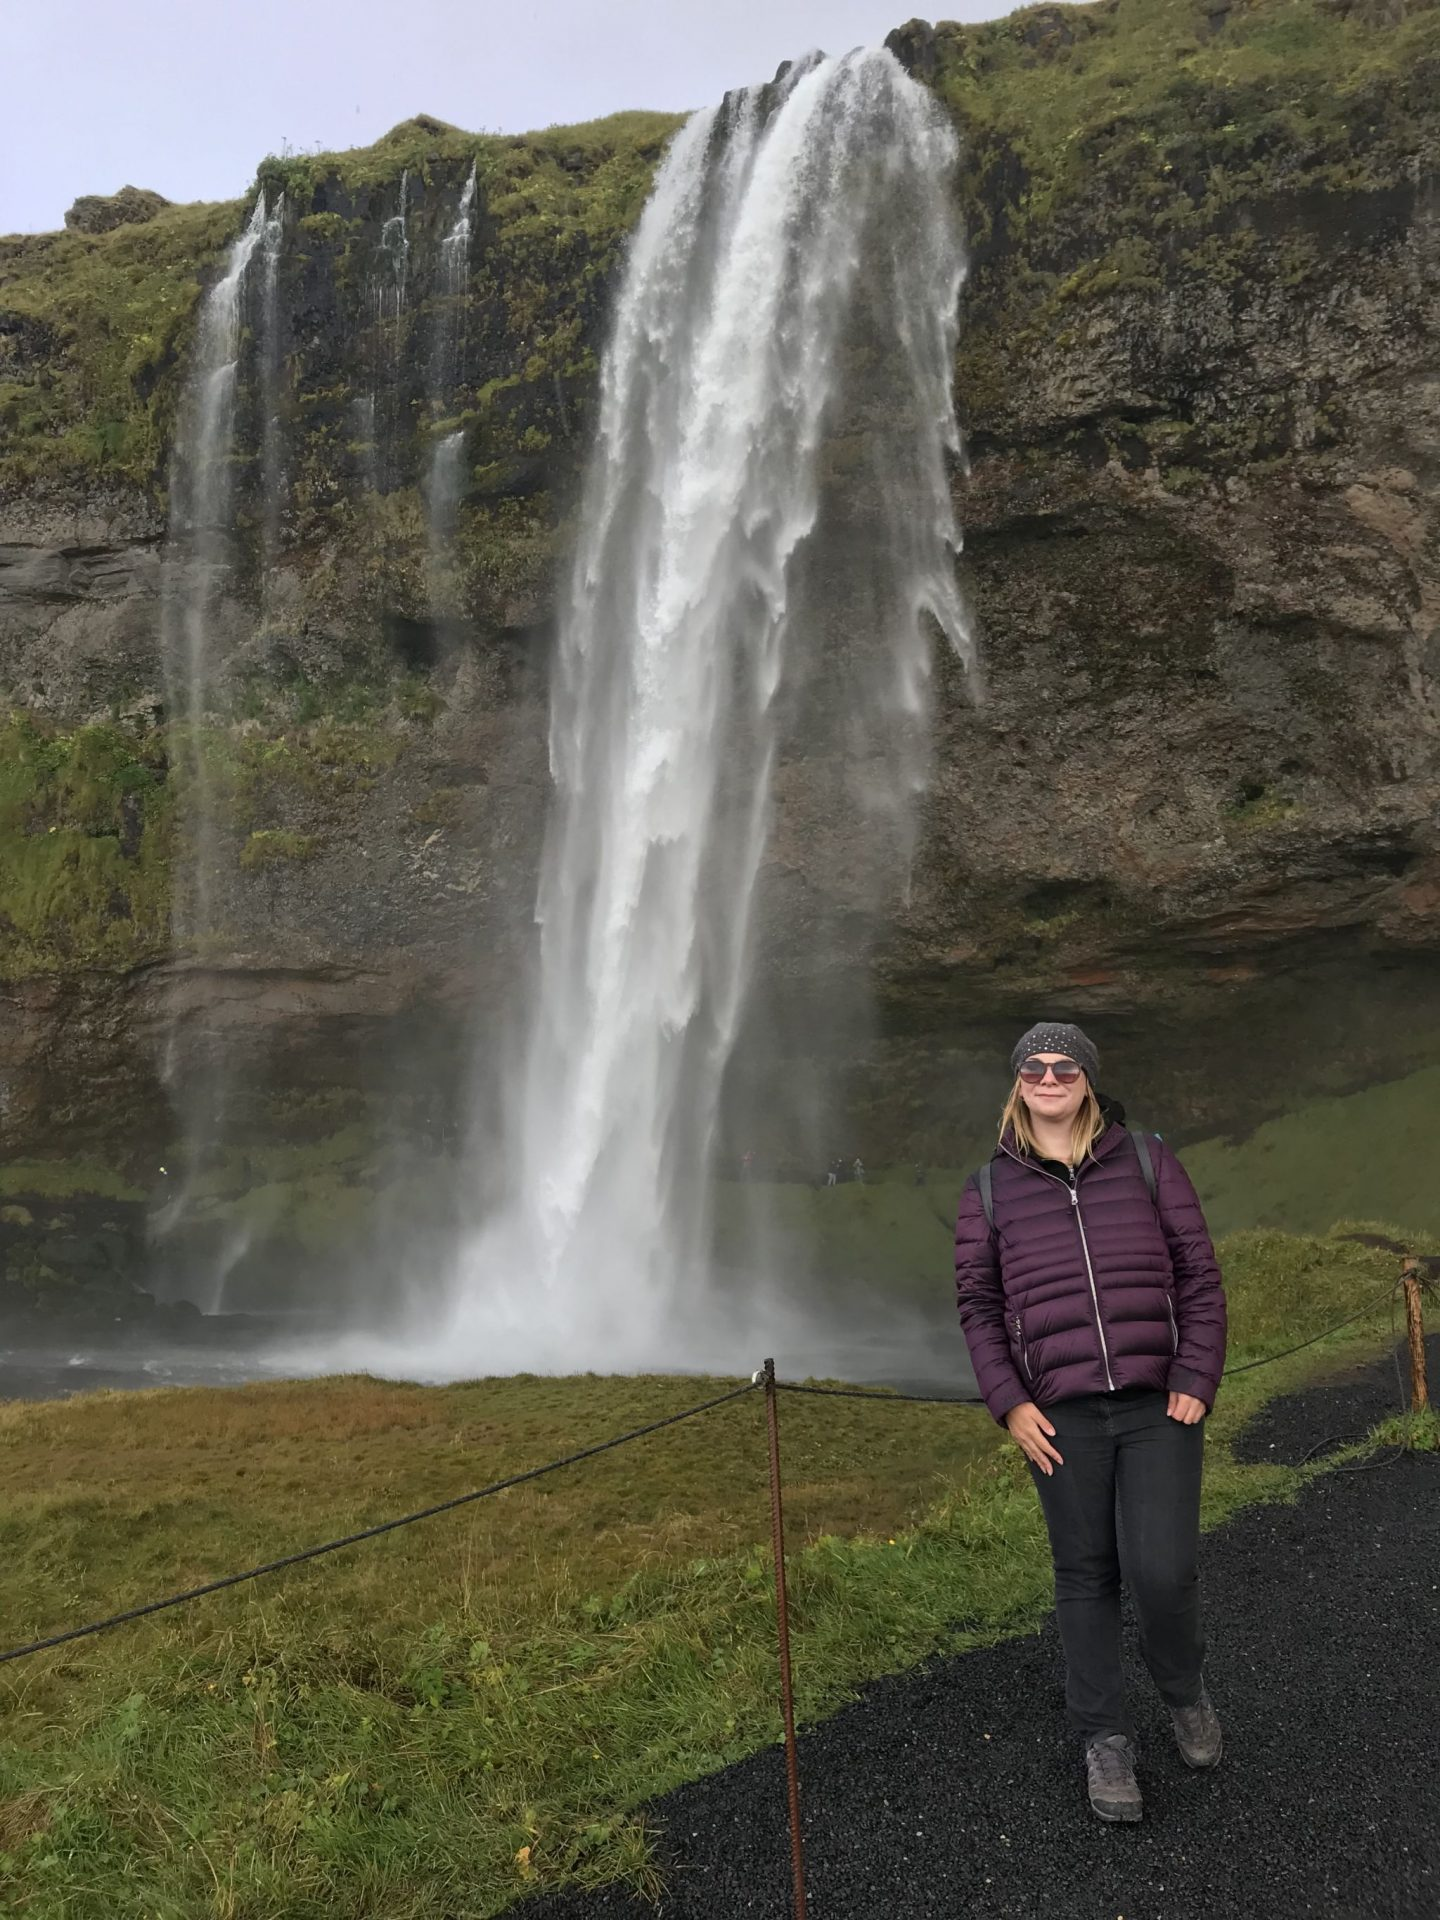 Me next to the magnificent Seljalandsfoss waterfall in Iceland during Autumn